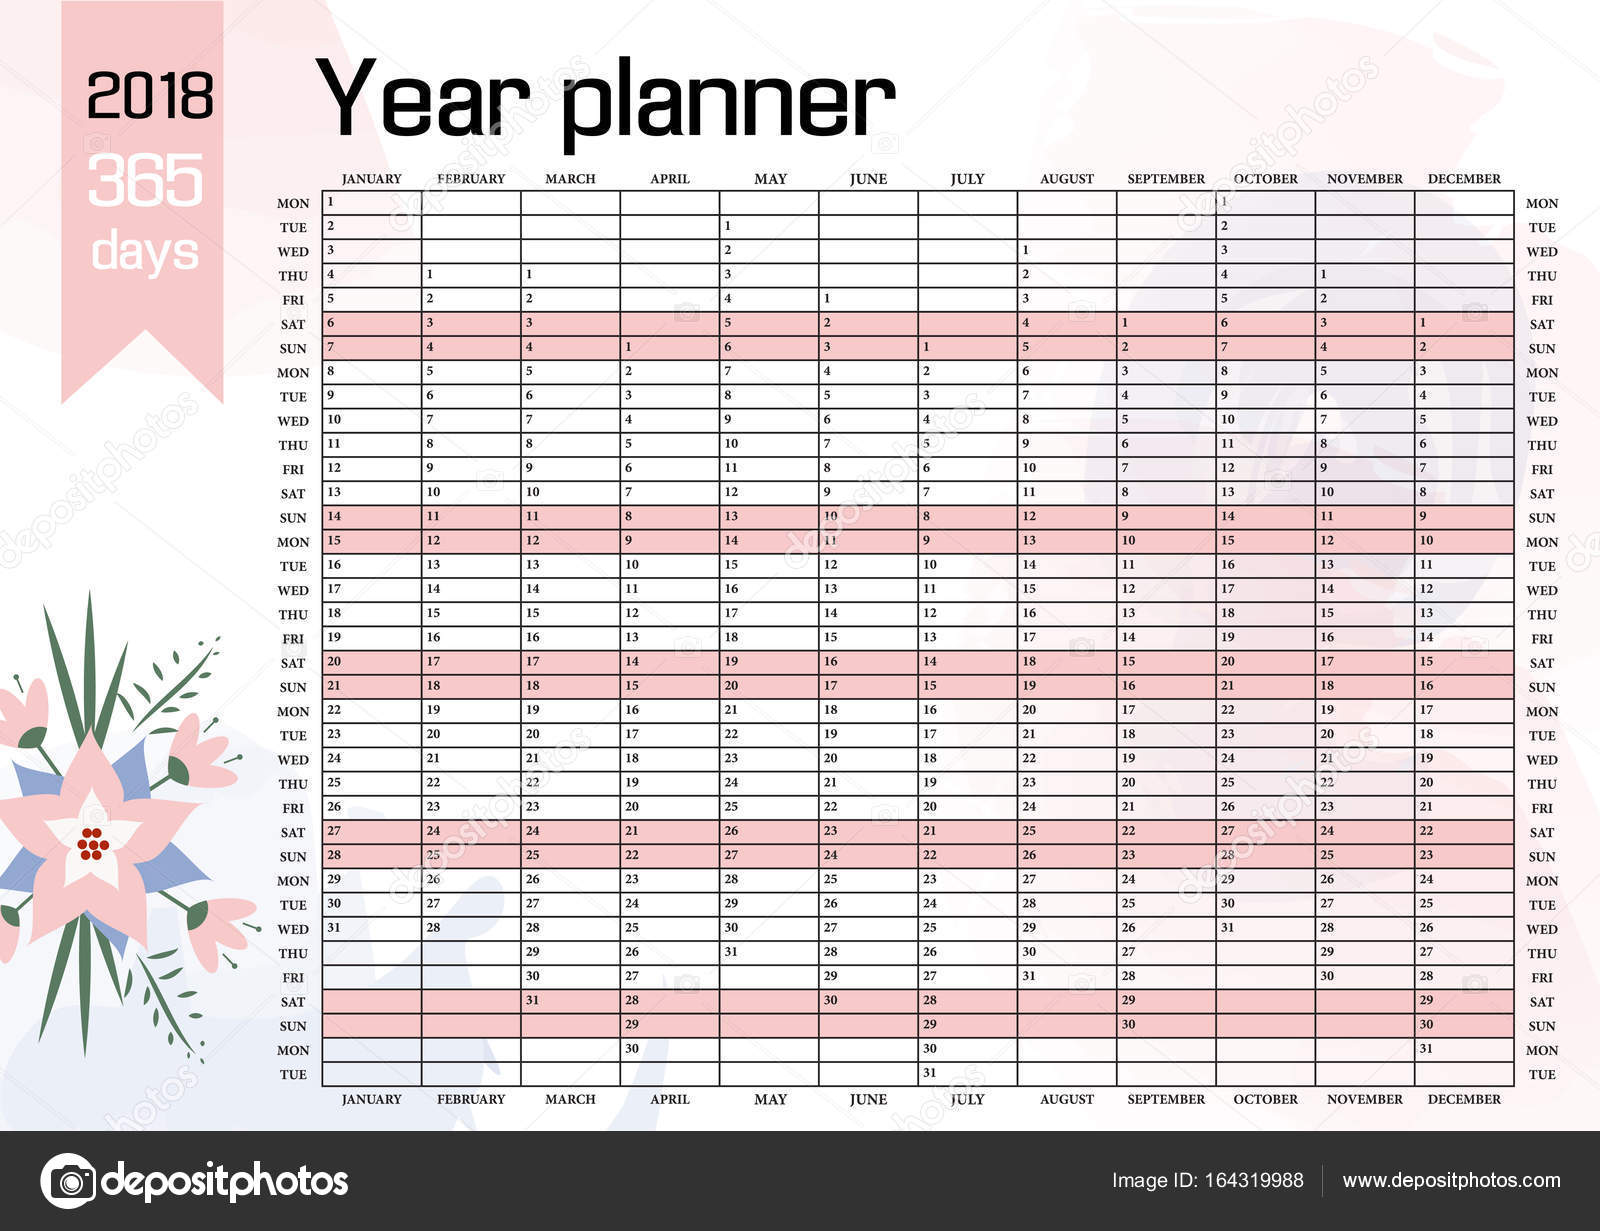 Three Year Calendar Planner : Year planner template images yearly